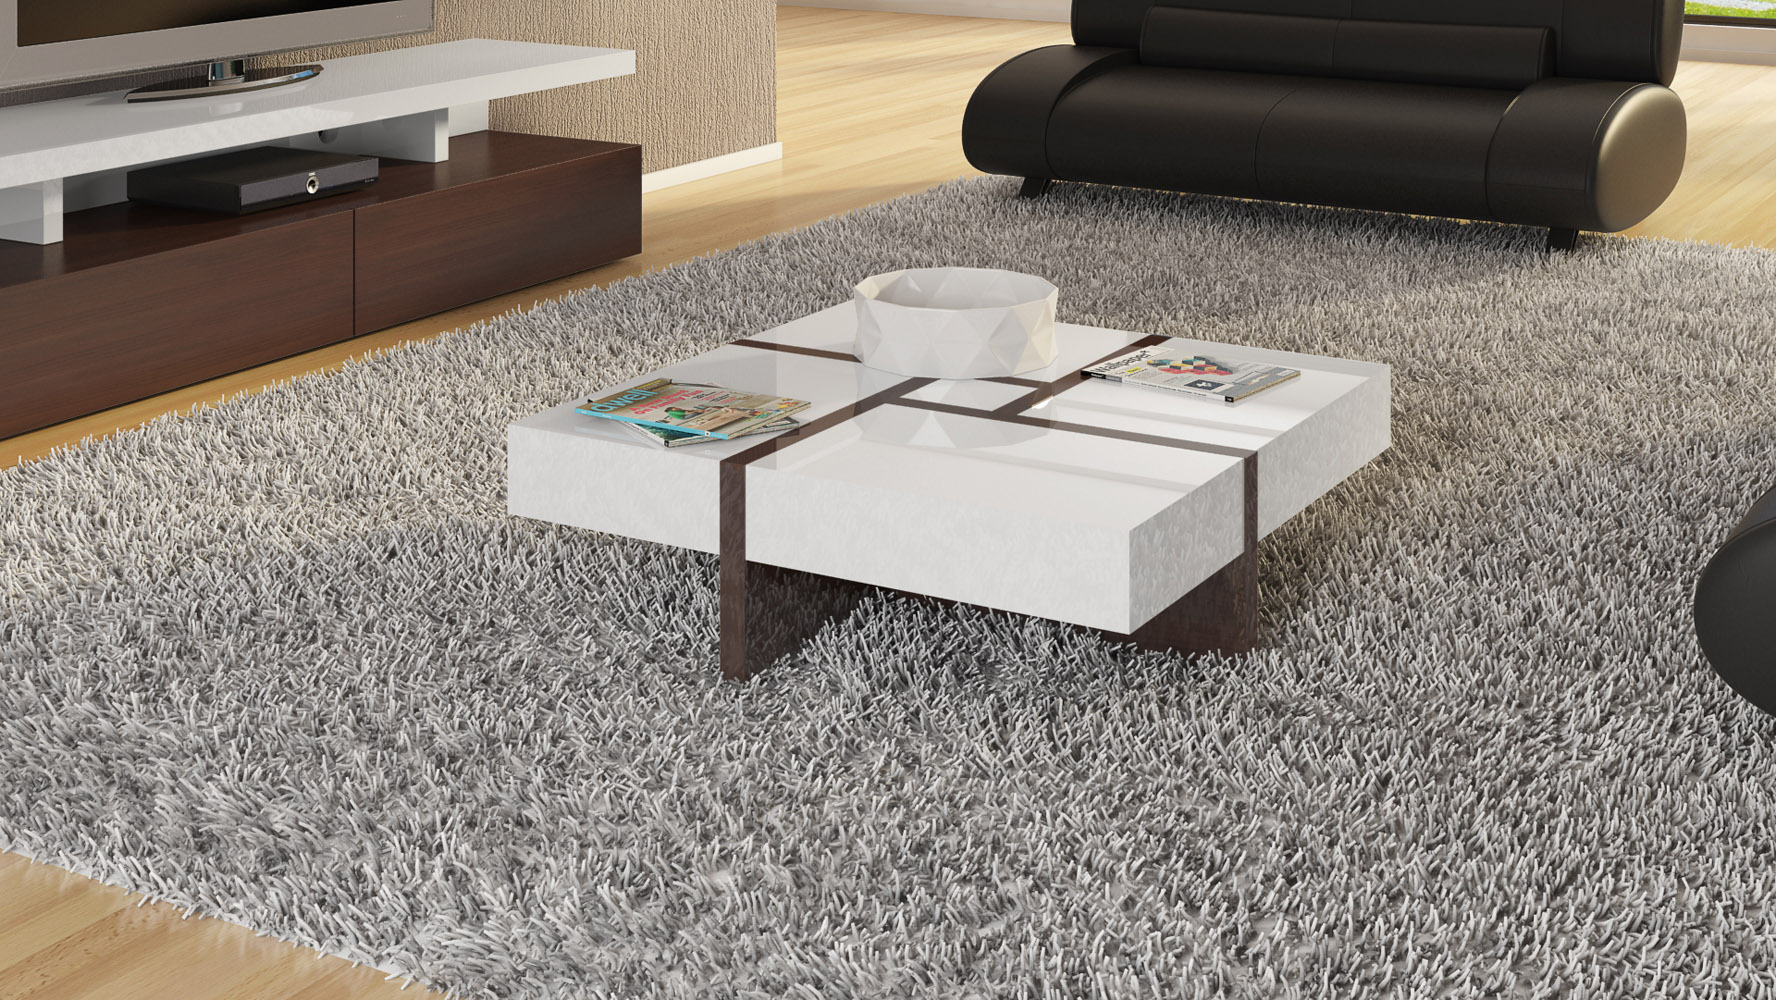 Mcintosh high gloss coffee table with storage white square mcintosh coffee table white geotapseo Image collections